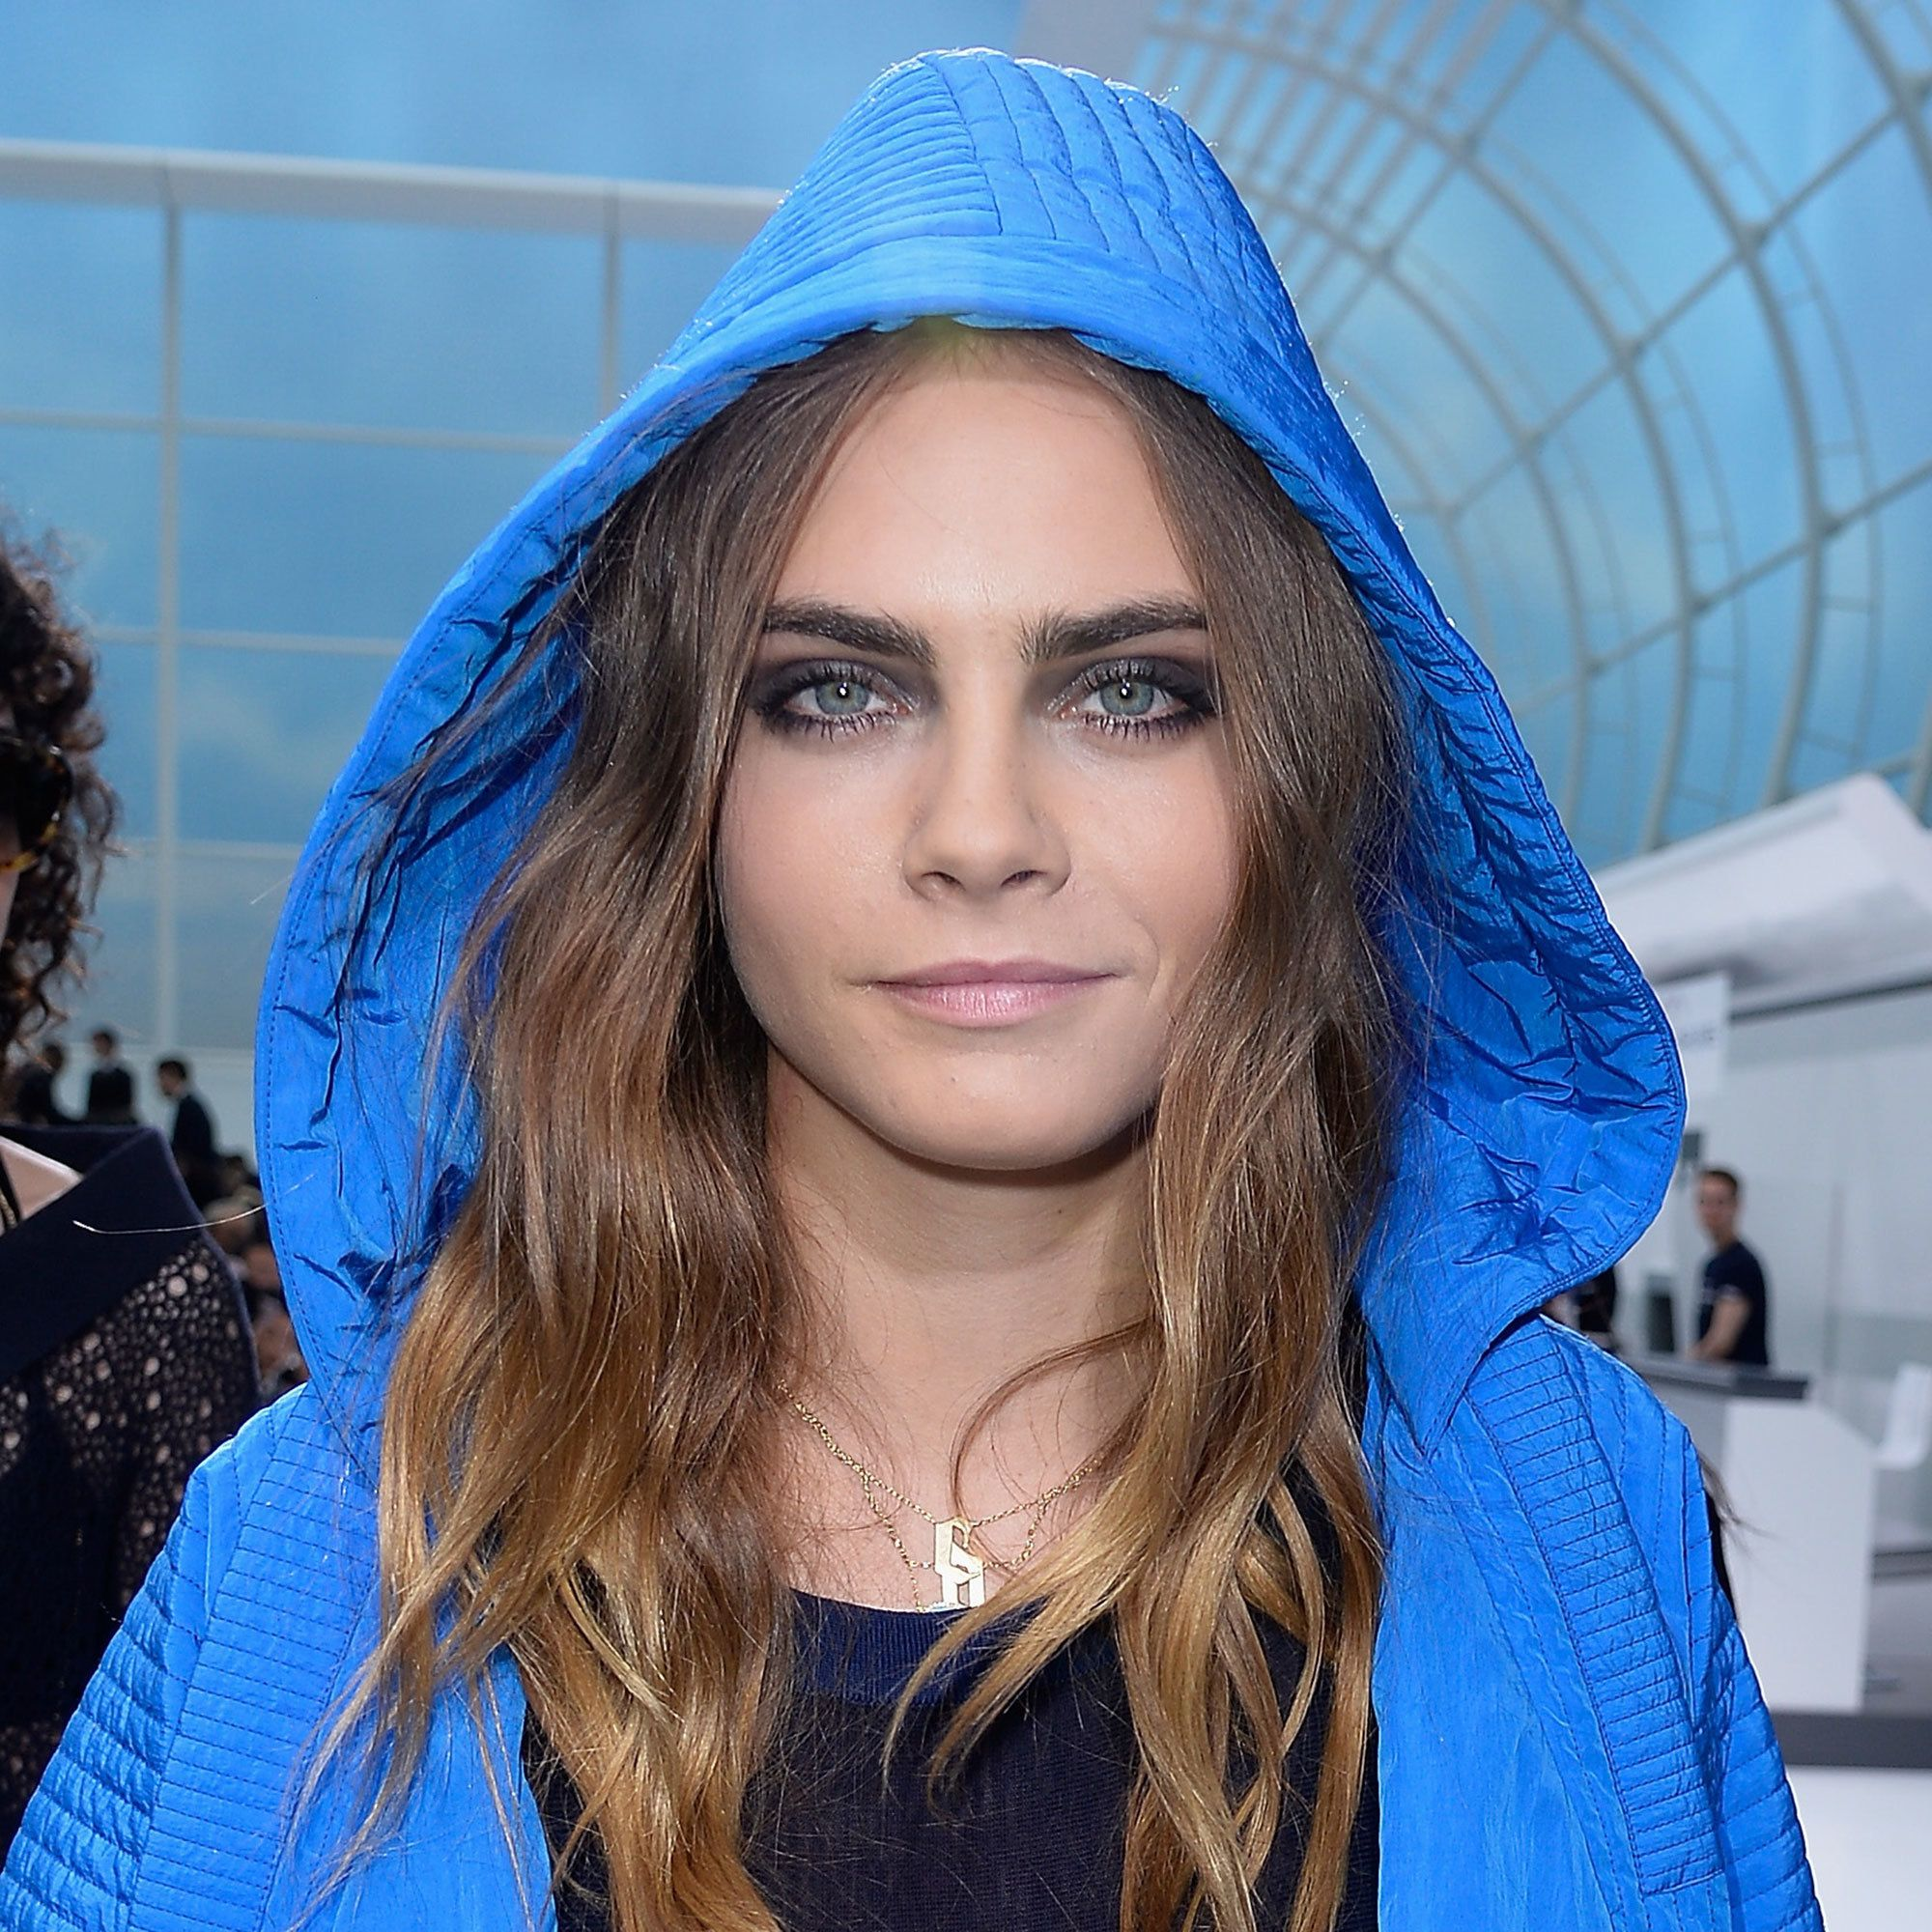 This Picture Of Cara Delevingne As Enchantress Will Terrify You